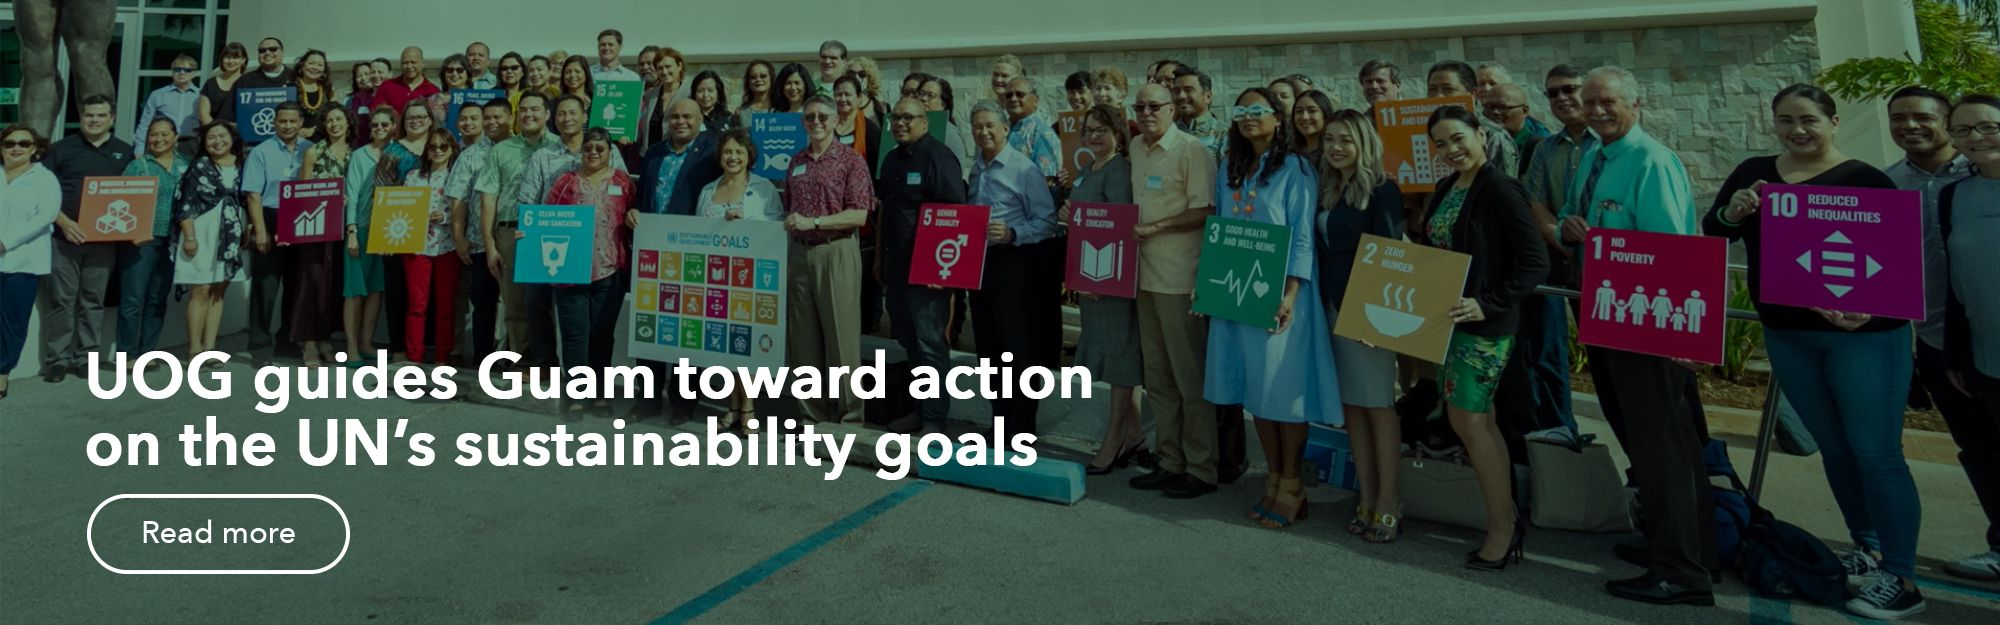 UOG guides Guam toward action on the UN's sustainability goals